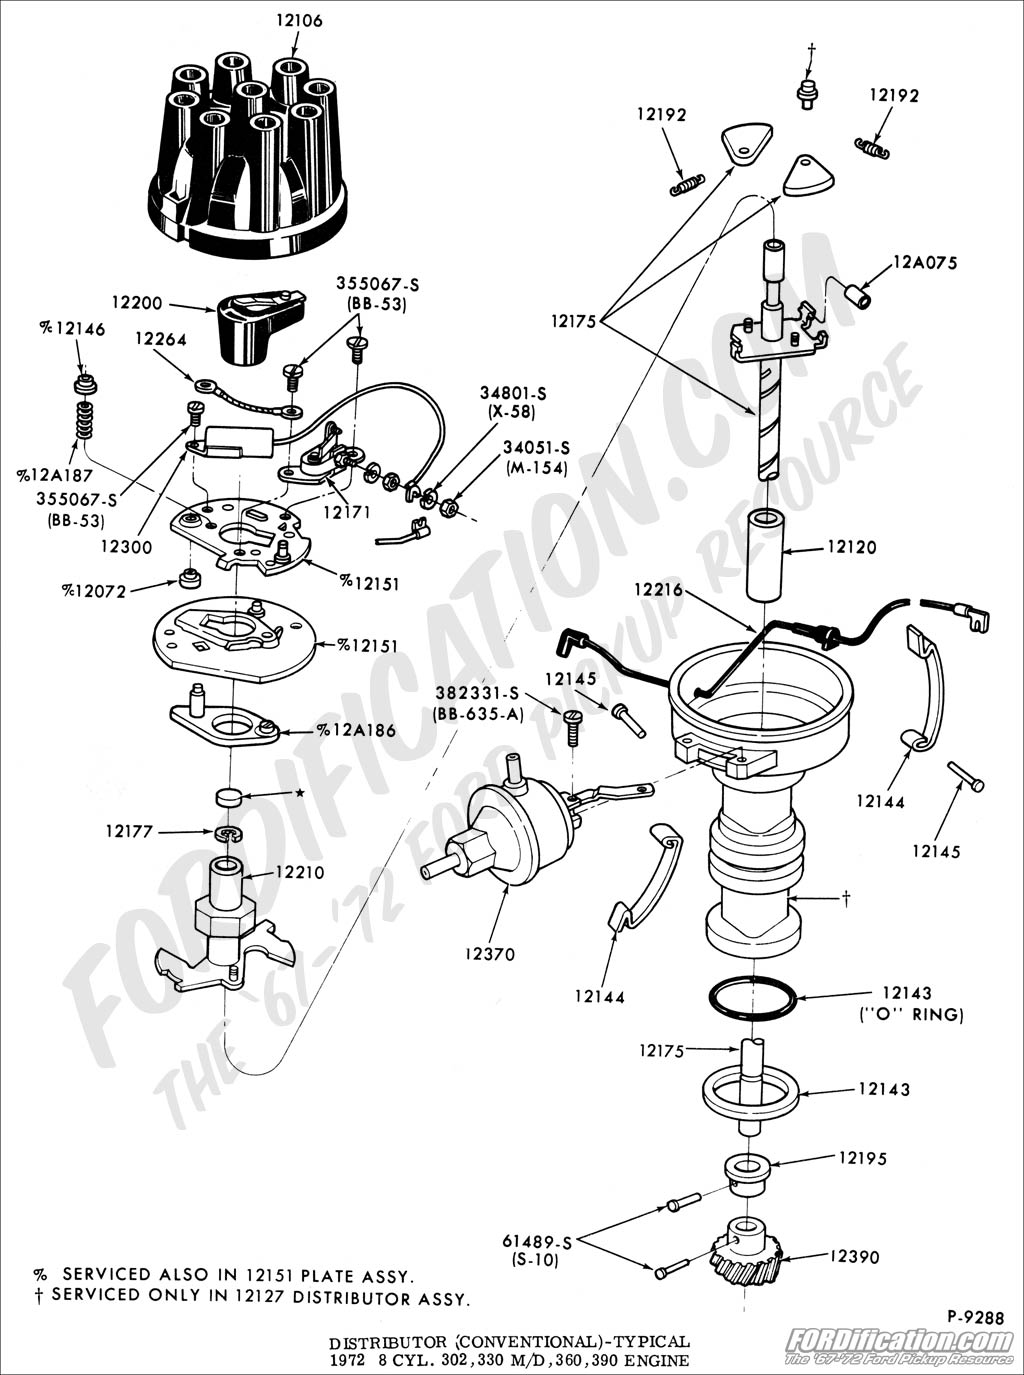 distributor_V8 02 ford truck technical drawings and schematics section i ford distributor diagram at crackthecode.co